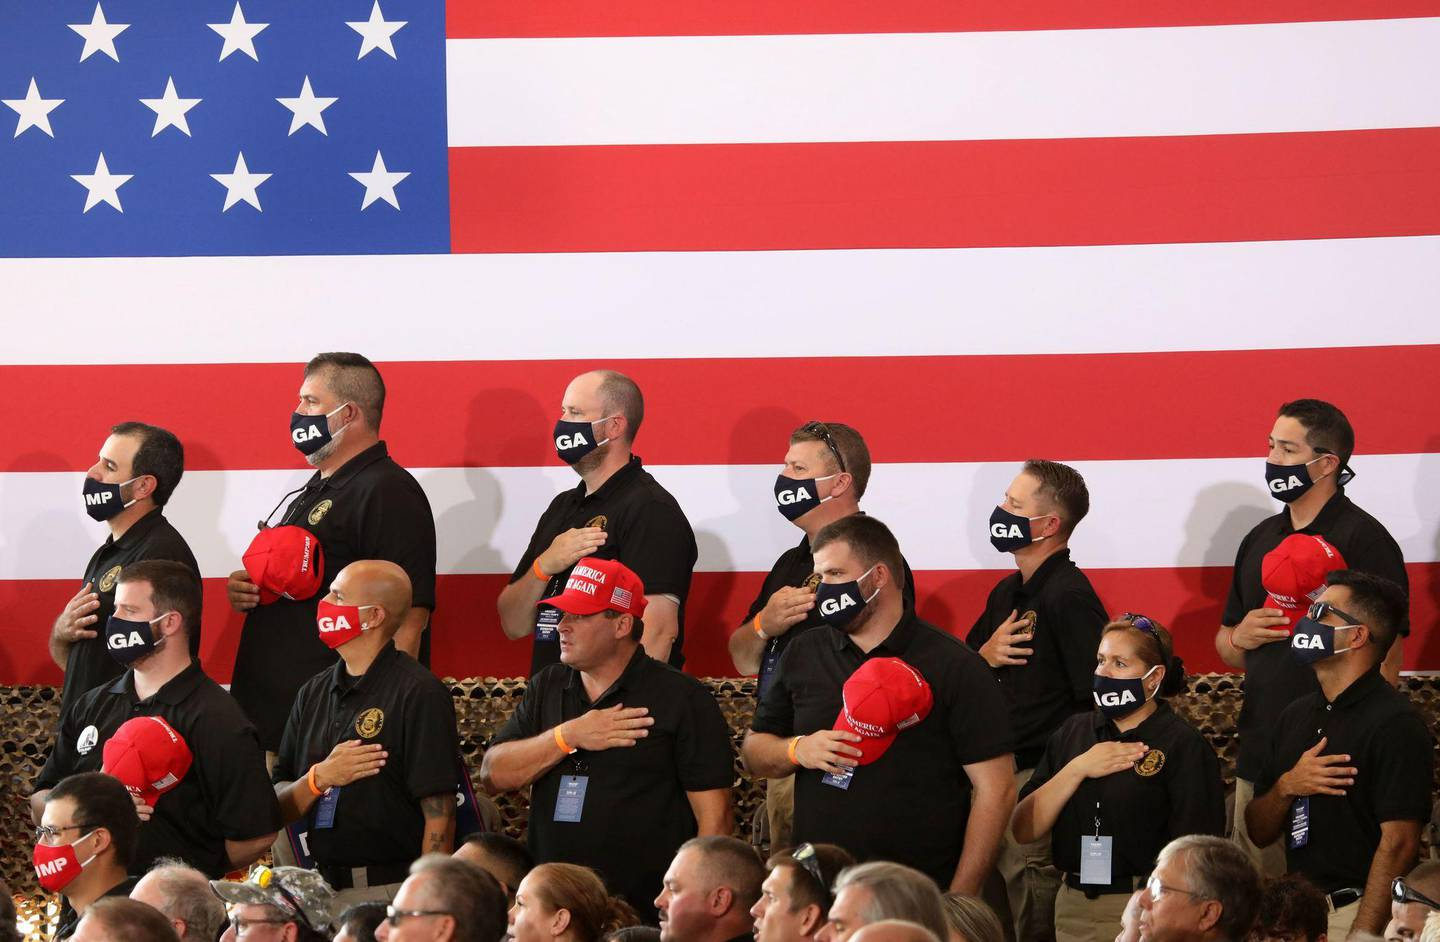 YUMA, AZ - AUGUST 18: Supporters of U.S. President Donald Trump stand for the national anthem before a campaign rally at The Defense Contractor Complex on August 18, 2020 in Yuma, Arizona. Trump excoriated presumptive Democratic nominee former Vice President Joe Biden as being soft on illegal immigration as Democrats hold their convention this week remotely from Milwaukee. Hundreds waited in line in 104-degree heat to see the president, many without masks or maintaining distance from others, according to published reports. The crowd size inside the hangar was limited in a nod to the ongoing pandemic that has hit Yuma County particularly hard.   Sandy Huffaker/Getty Images/AFP == FOR NEWSPAPERS, INTERNET, TELCOS & TELEVISION USE ONLY ==